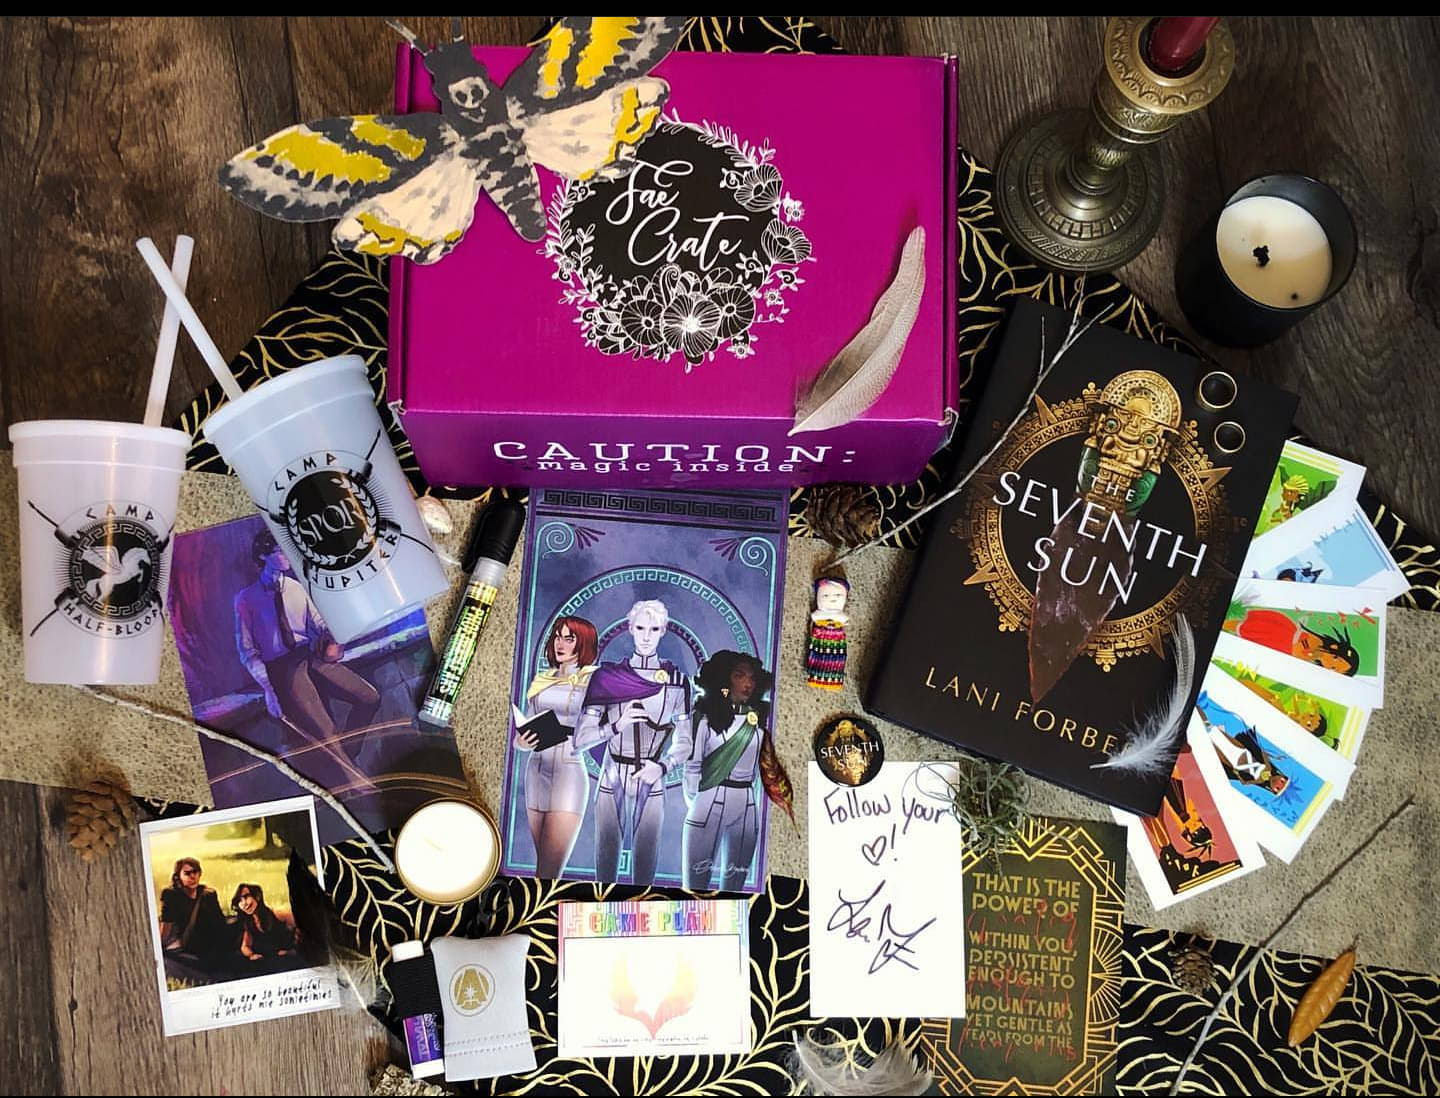 February 2020 Classified box theme includes Game Plan Notepad, Phoenix Tears Hand Sanitizer, Aurora Rising Chapstick and Travel Clip, This Savage Song 3D Mini Poster, Merciful Crow Caste Sorting Candle, Aurora Rising Muses Art, Vampire Academy Polaroid, Cauldron Blessed Shirt, E-Book Download of The Last King of Mountain by Camryn Daytona, and Seventh Sun by Lani Forbes.